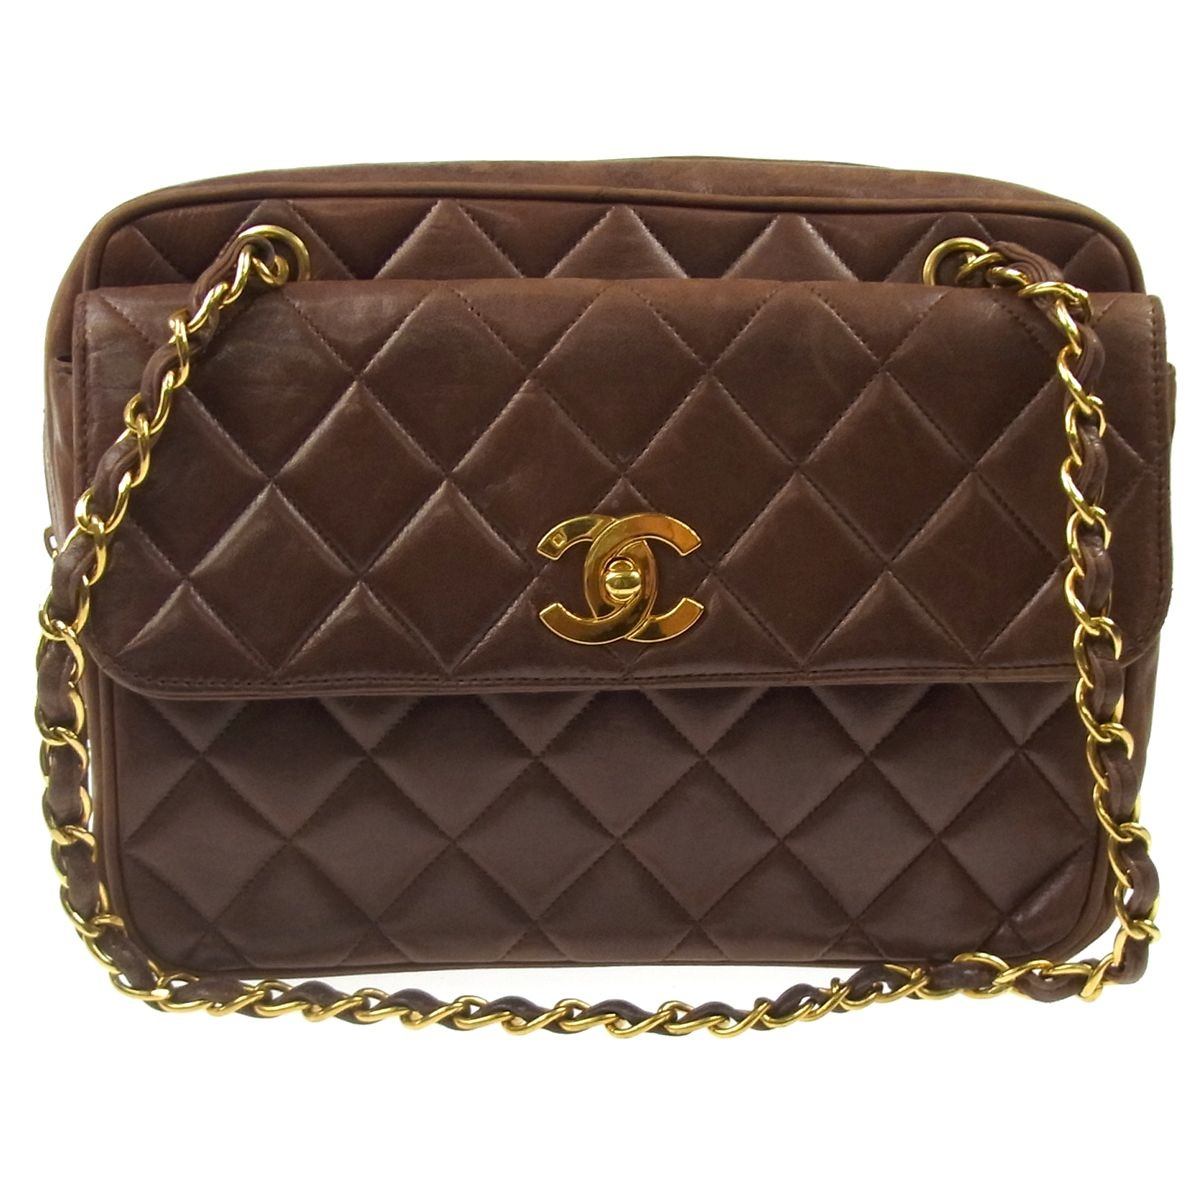 36c350687d50 Where To Buy Authentic Vintage Chanel Bags | Stanford Center for ...